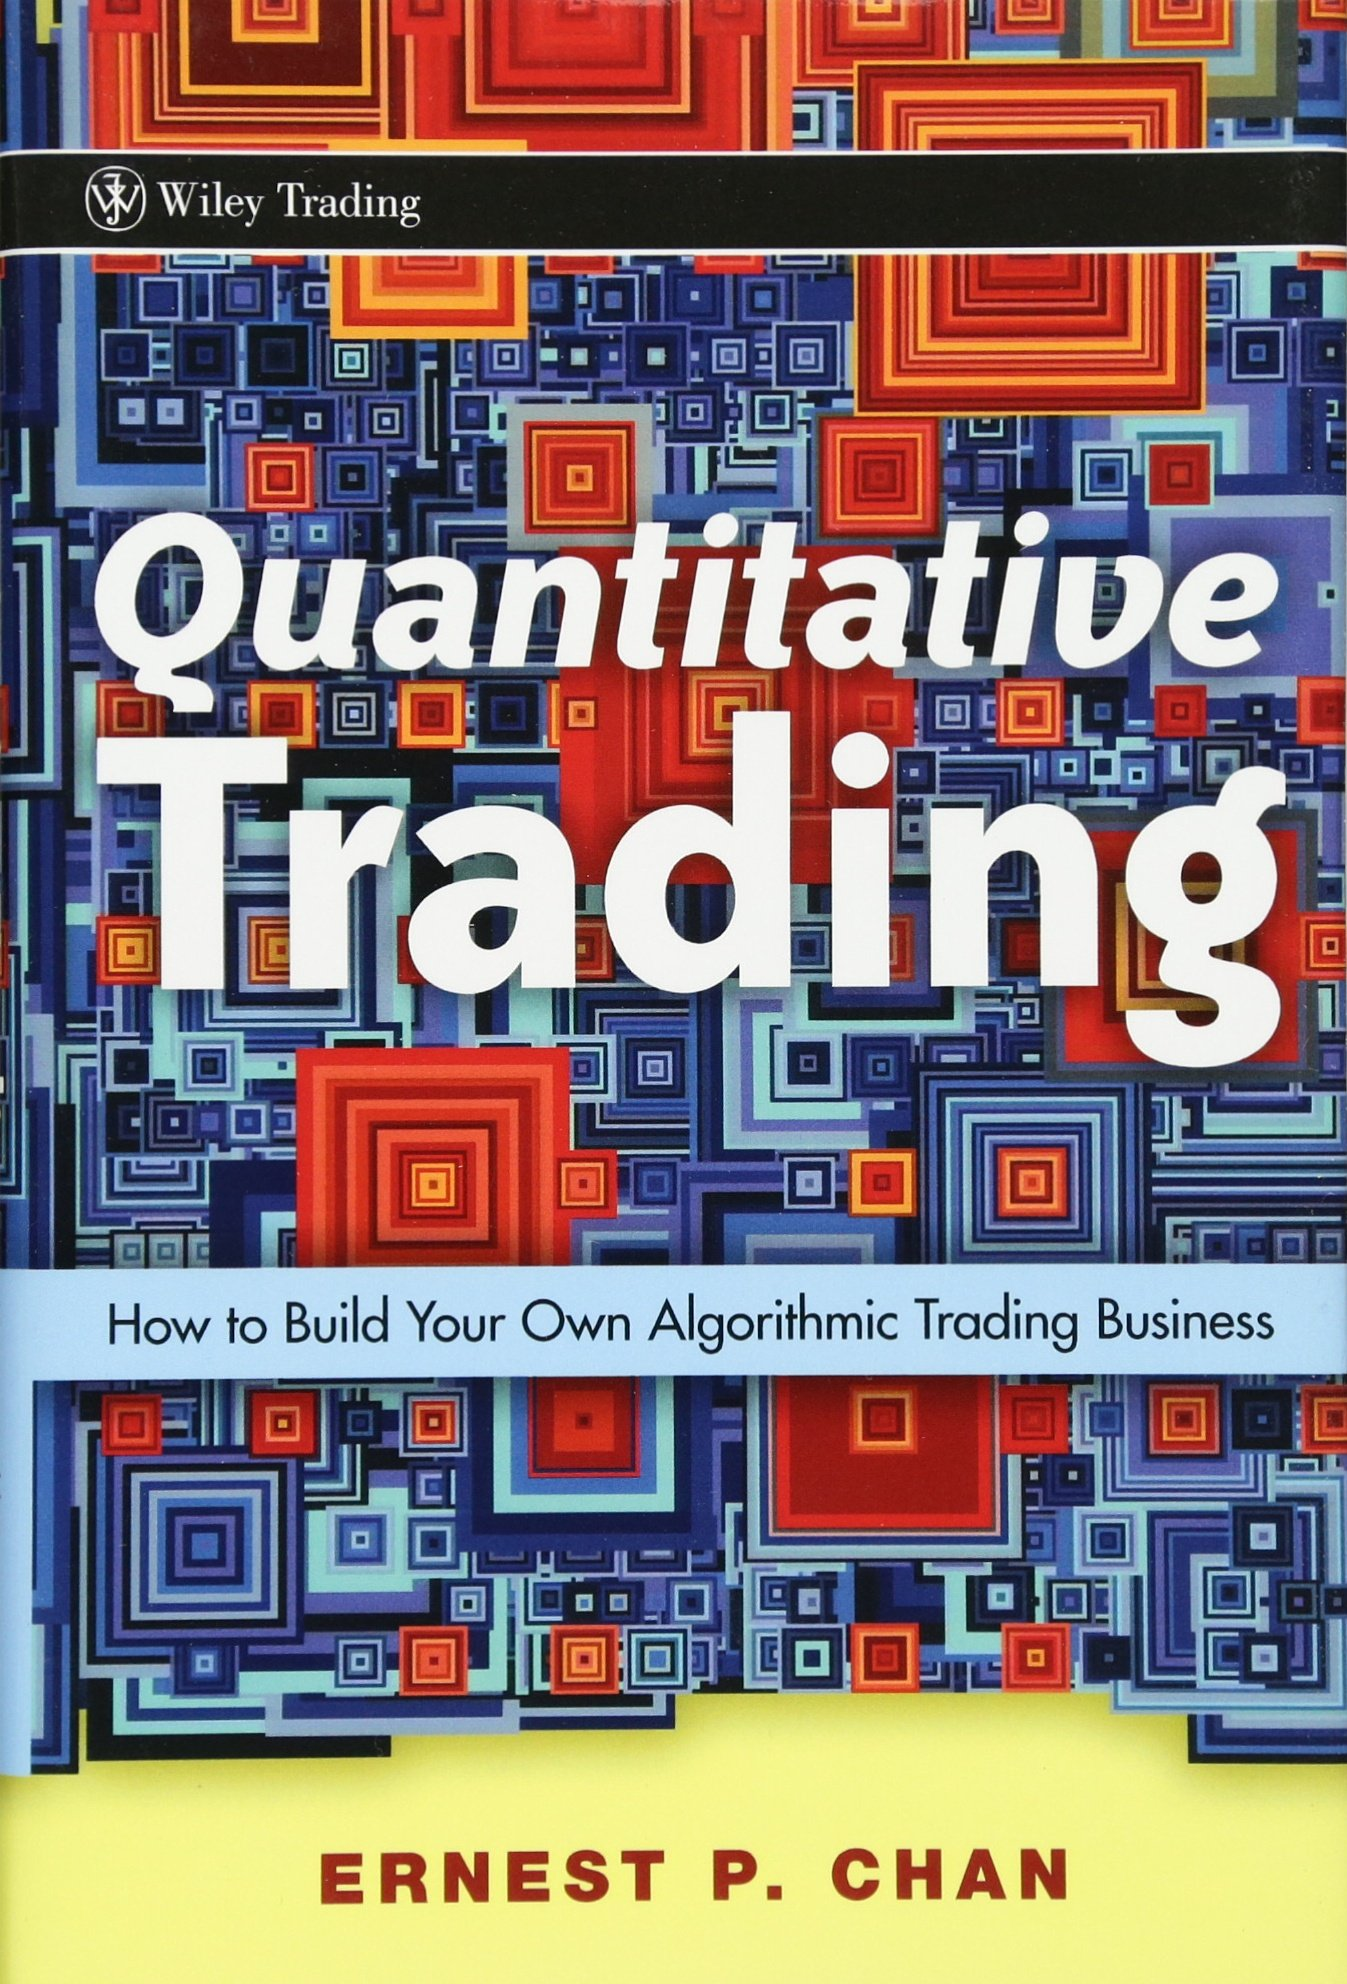 amazon quantitative trading how to build your own algorithmic